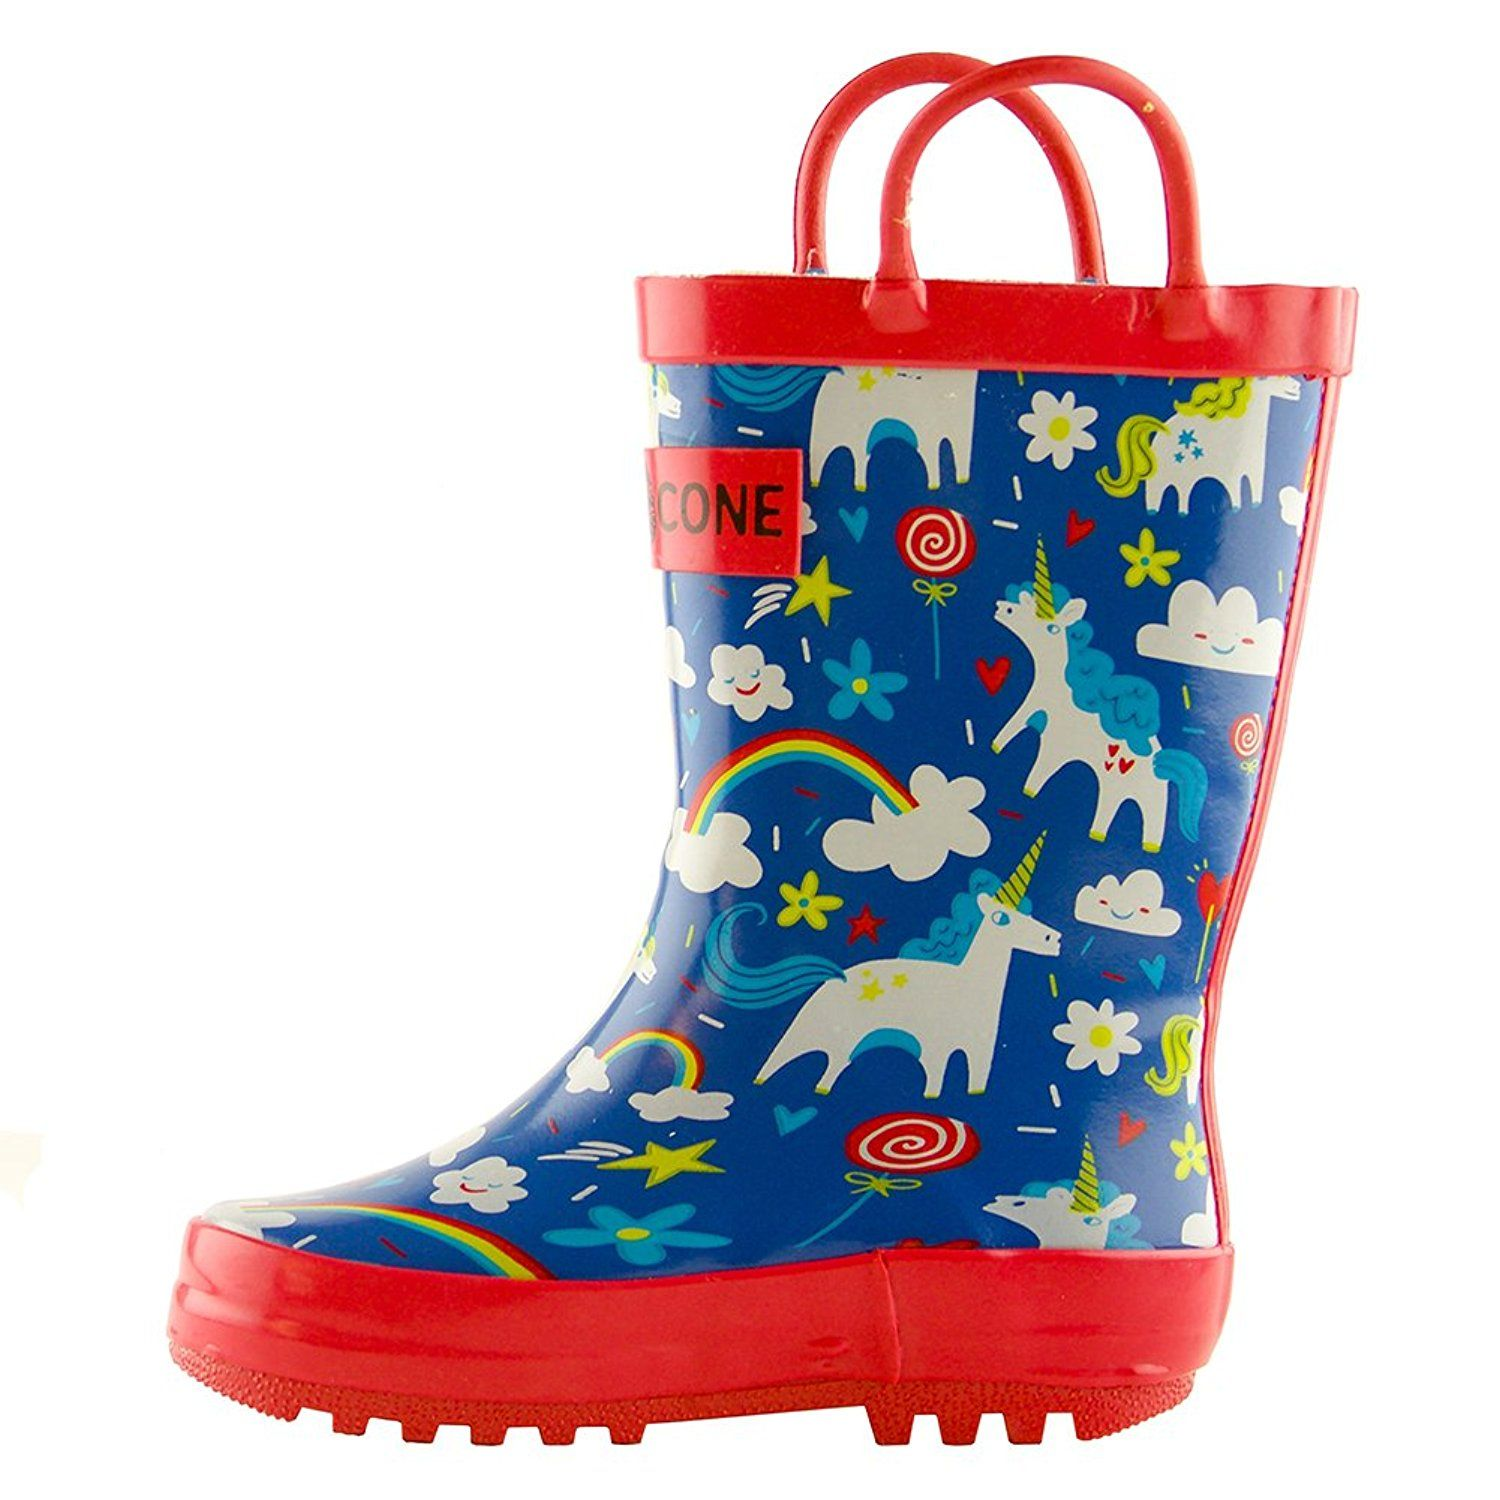 Amazon Com Lone Cone Children S Waterproof Rubber Rain Boots In Fun Patterns With Easy On Handles Simple For Kids G Toddler Rain Boots Kids Rain Boots Boots